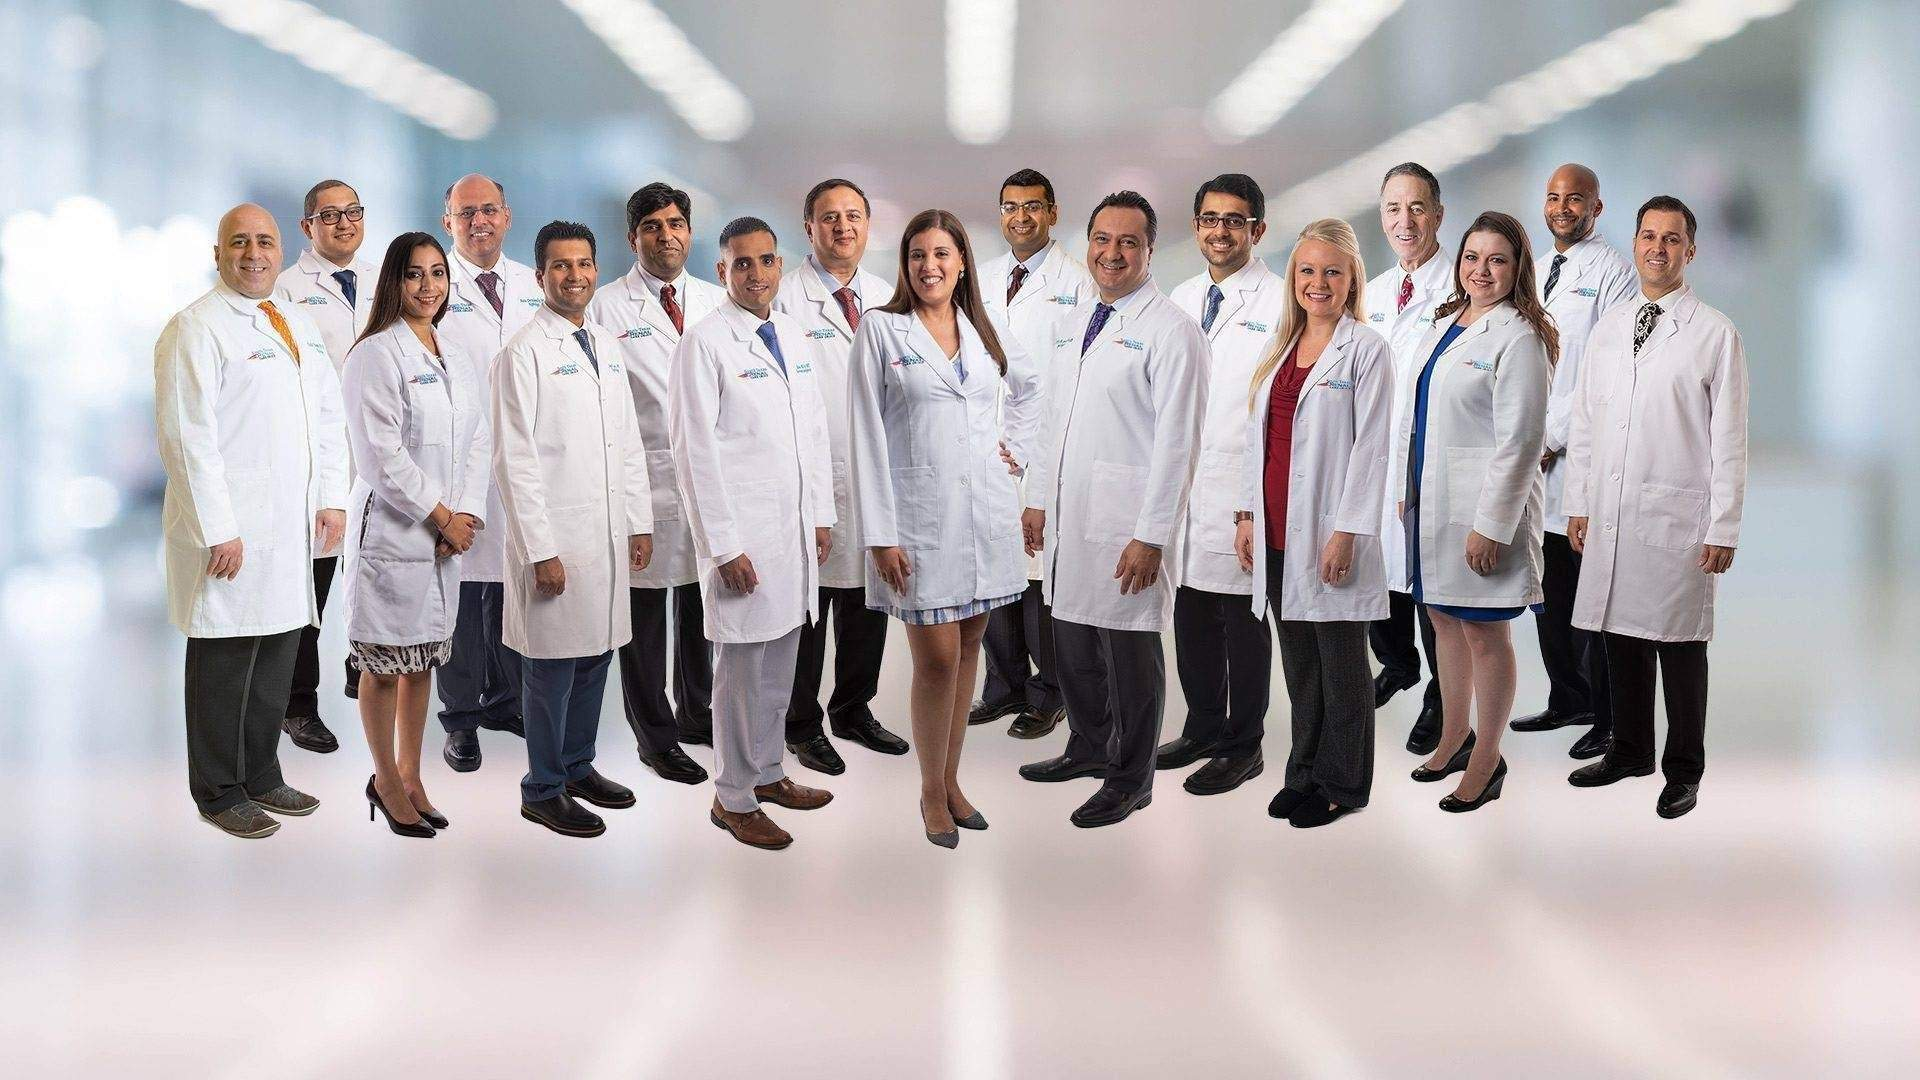 Meet the Leading Kidney Care Doctors at South Texas Renal